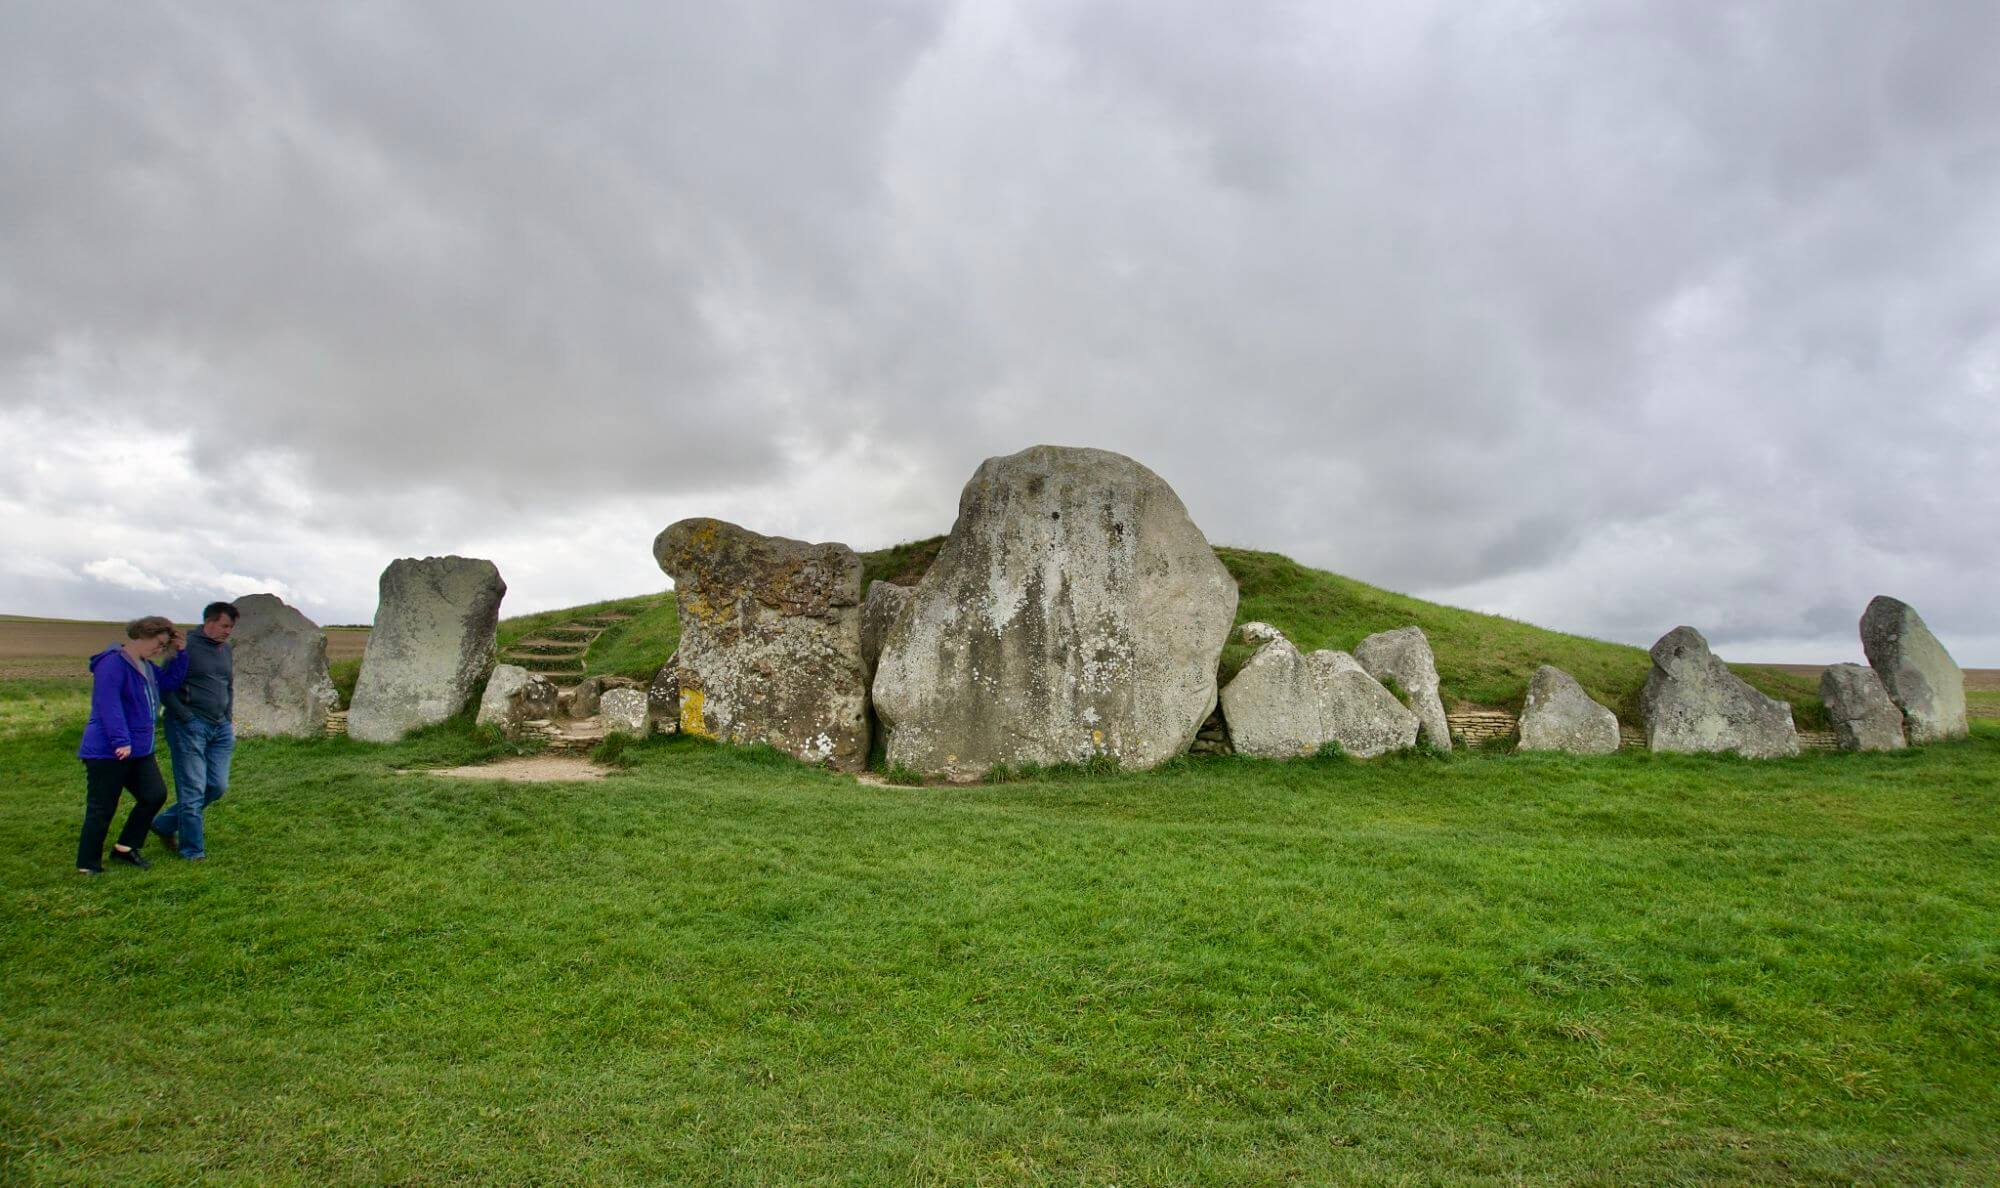 West Kennet Long Barrow in England